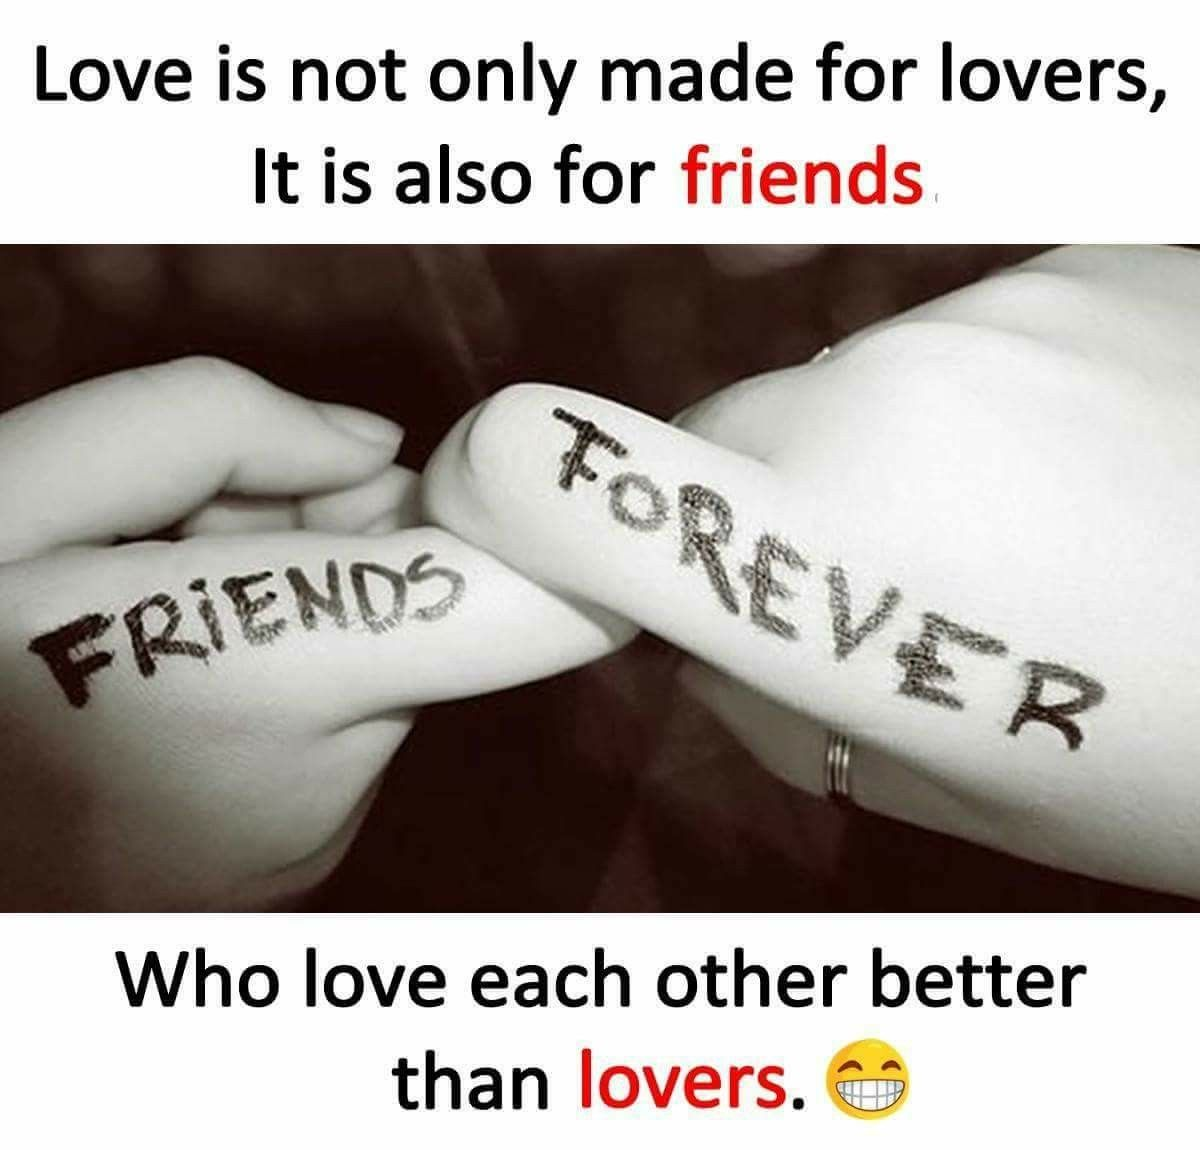 Pin By Crazyfeed On No One Cares Pinterest Friendship Quotes